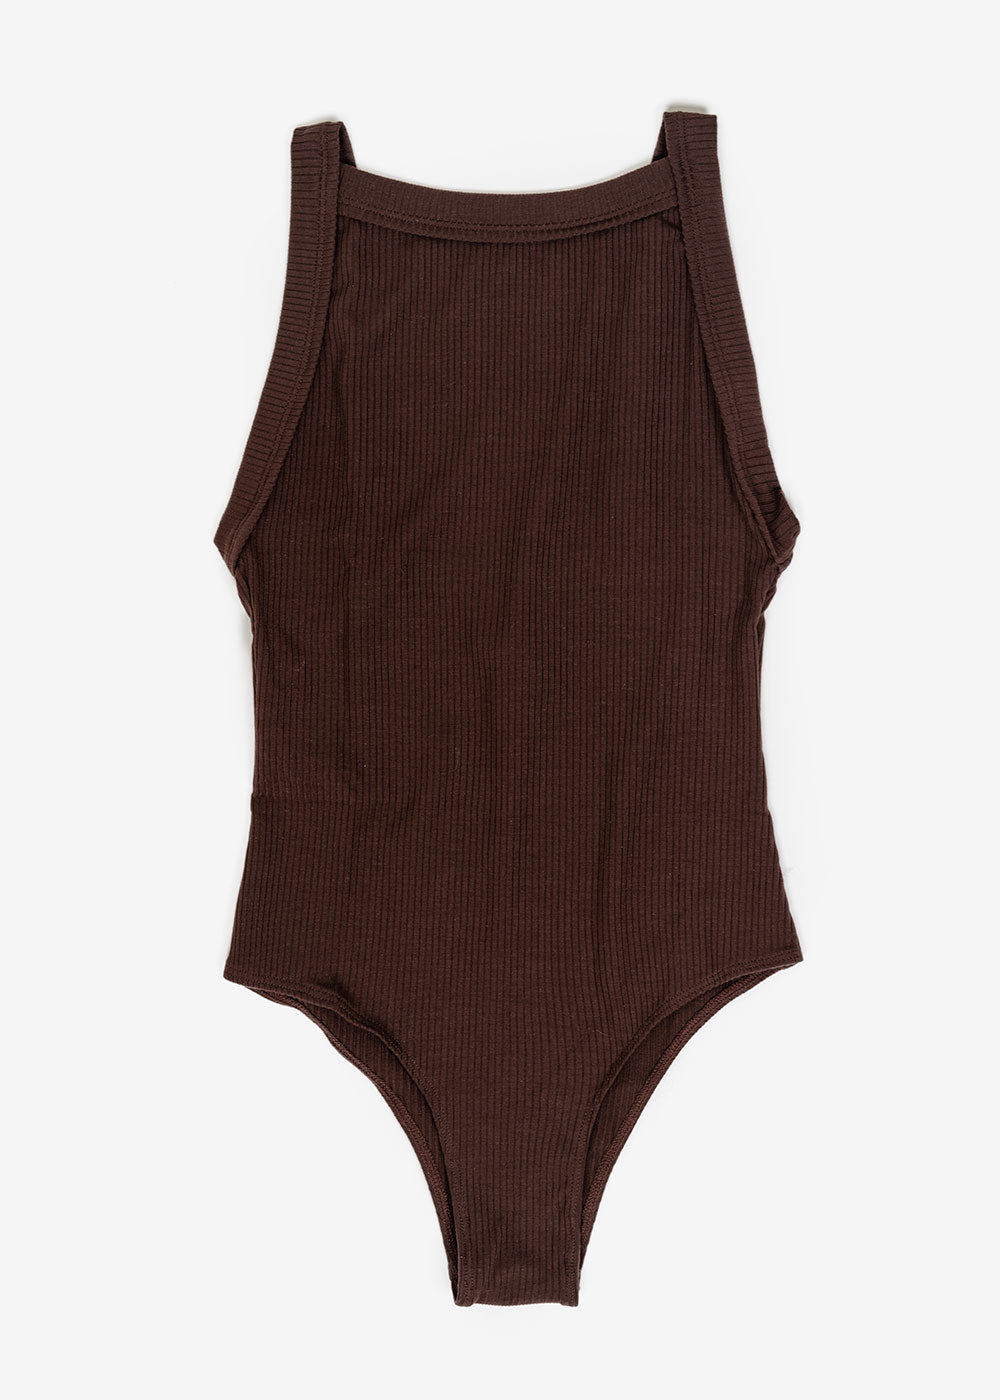 Angie Bauer Tamari Holland Bodysuit — Shop sustainable fashion and slow fashion at New Classics Studios